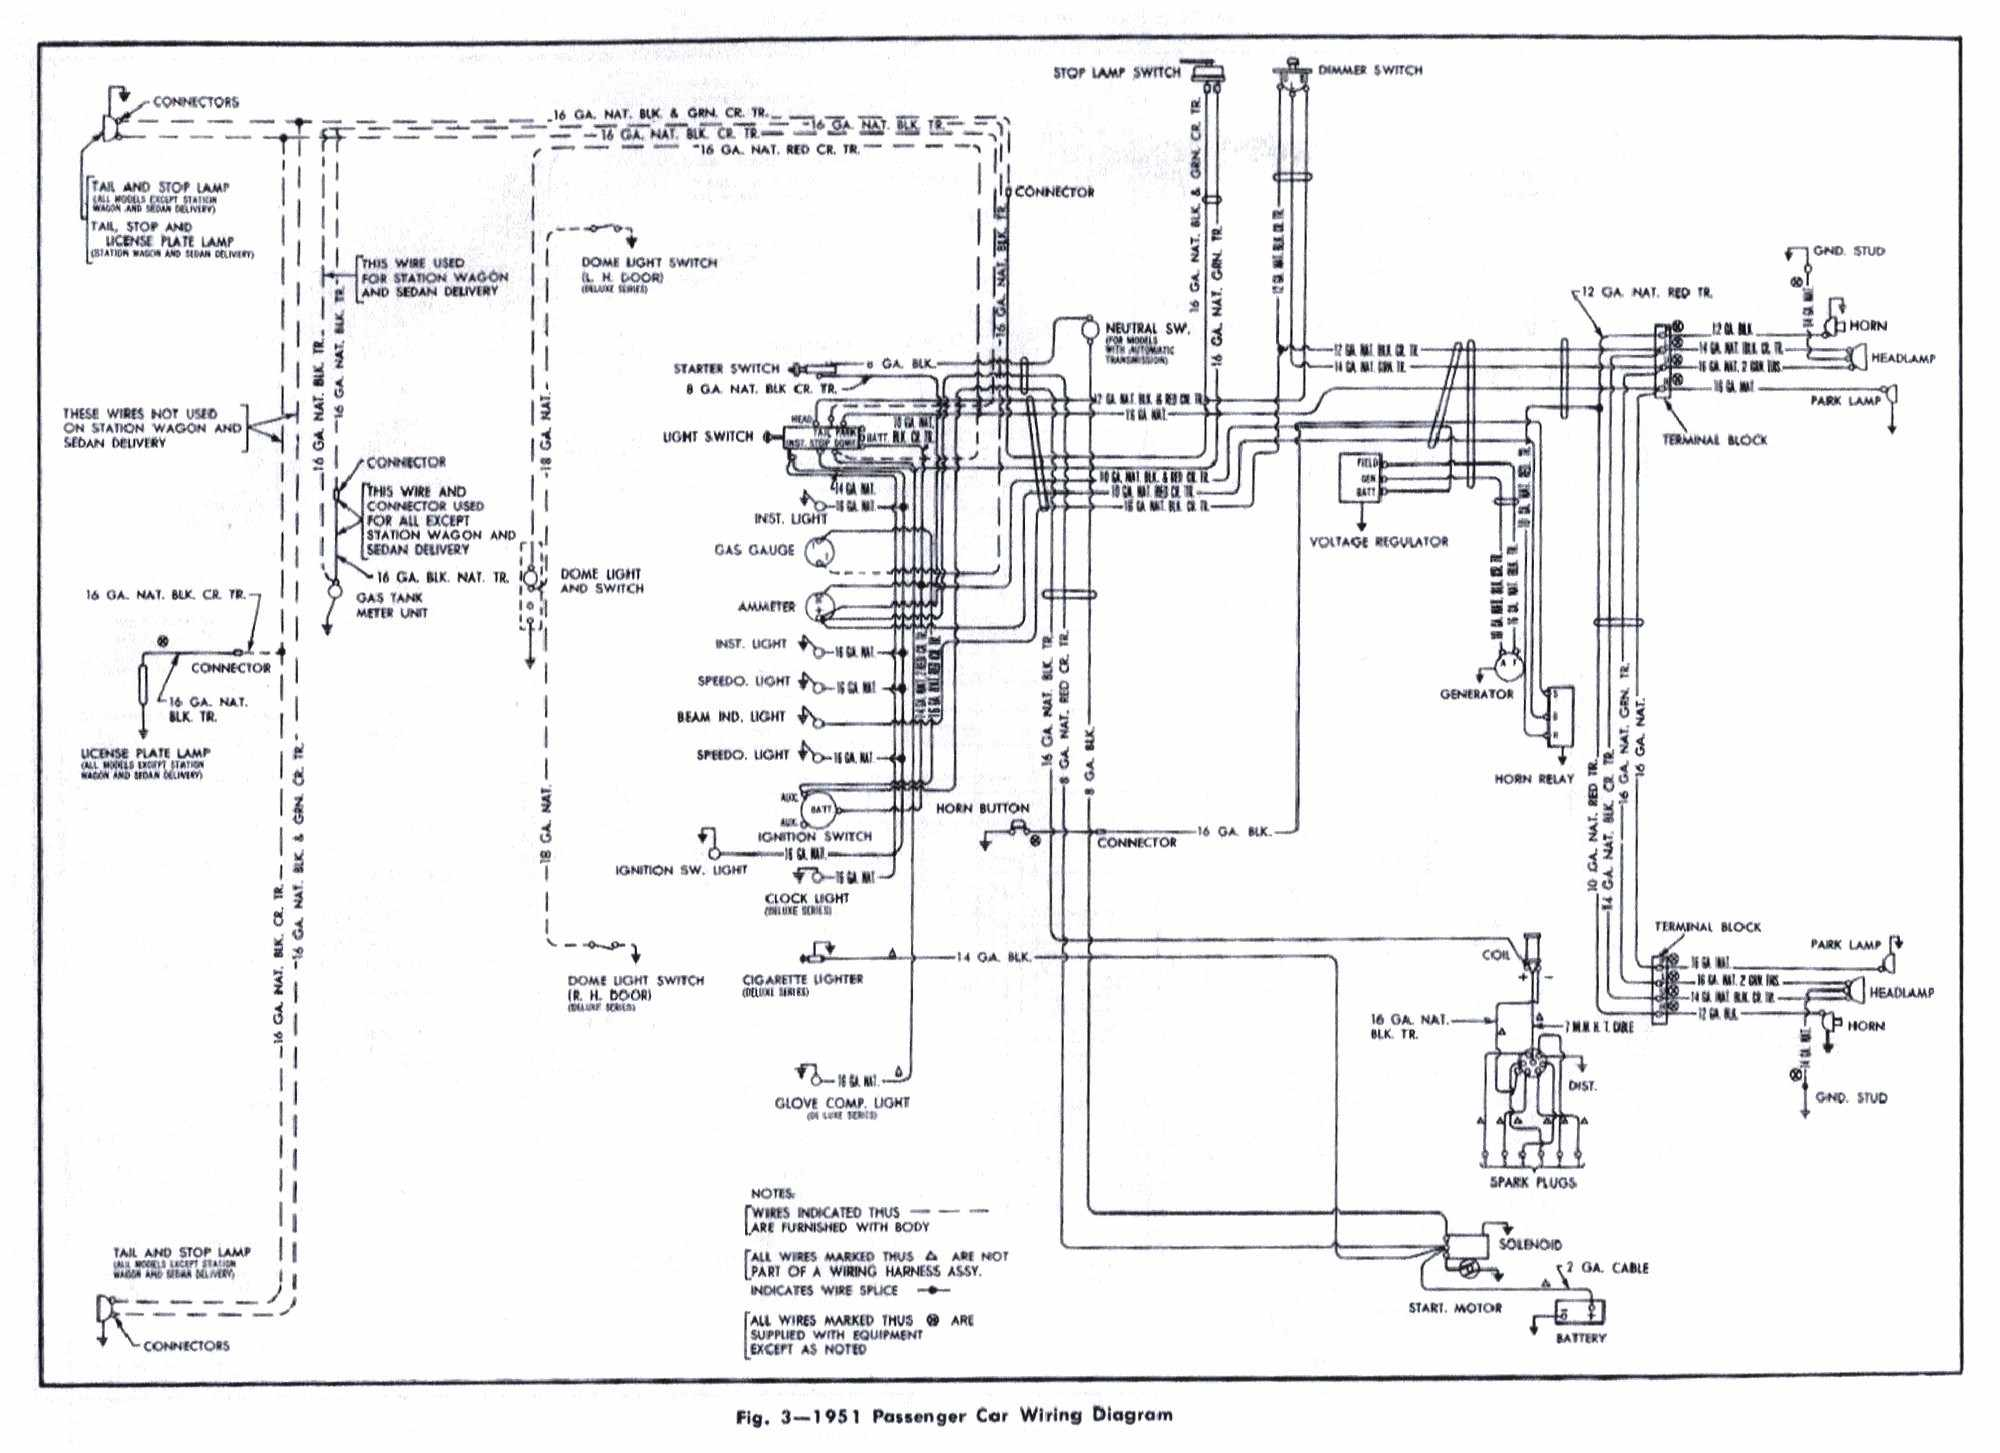 lotus van wiring diagrams knapheide wiring diagram rotator switch, Wiring diagram